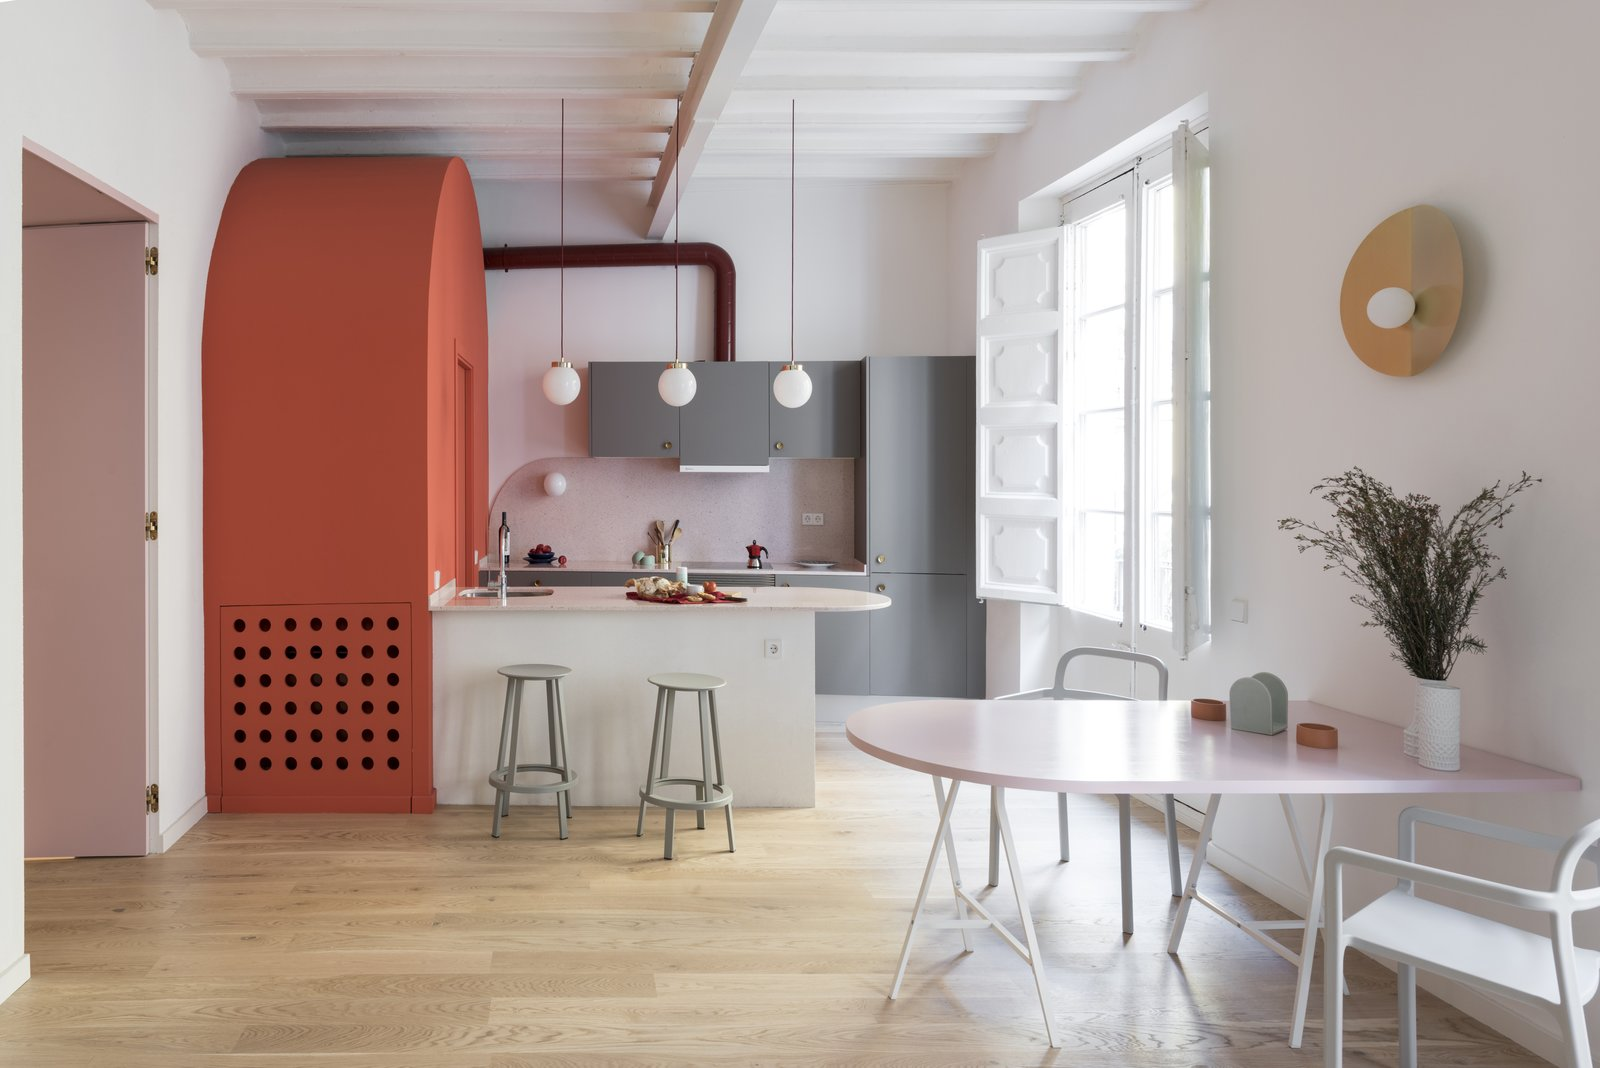 Dining Room, Light Hardwood Floor, Stools, Wall Lighting, Table, Pendant Lighting, and Chair An arc motif is a recurring theme throughout the kitchen's design.  Photos from Before & After: An Ancient Barcelona Apartment Gets a Colorful, Chic Makeover